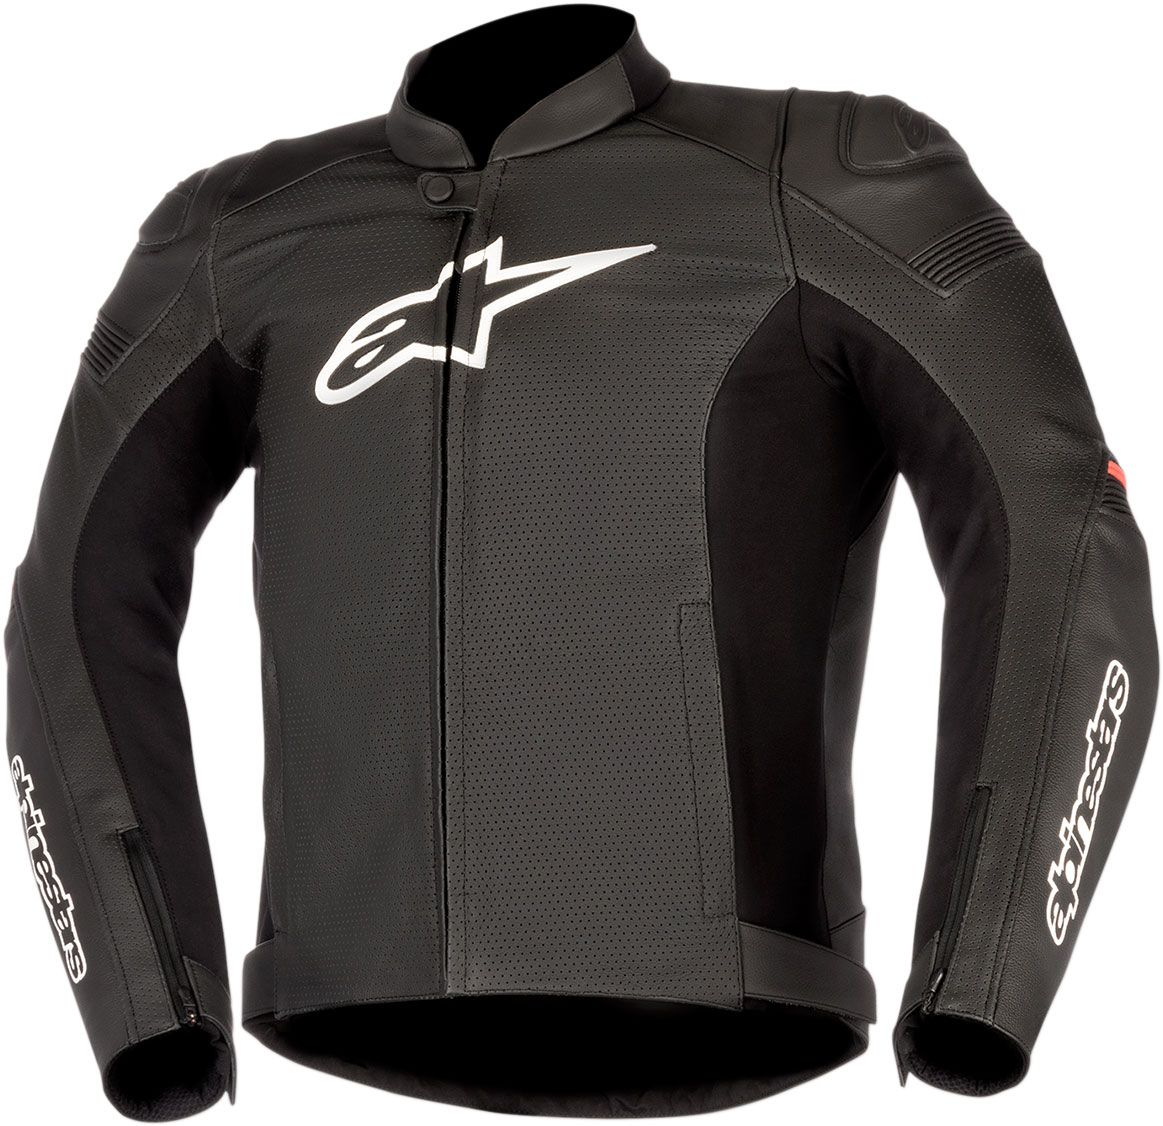 Alpinestars SP-1 AIRFLOW Perforated Leather Jacket (Black/Red)